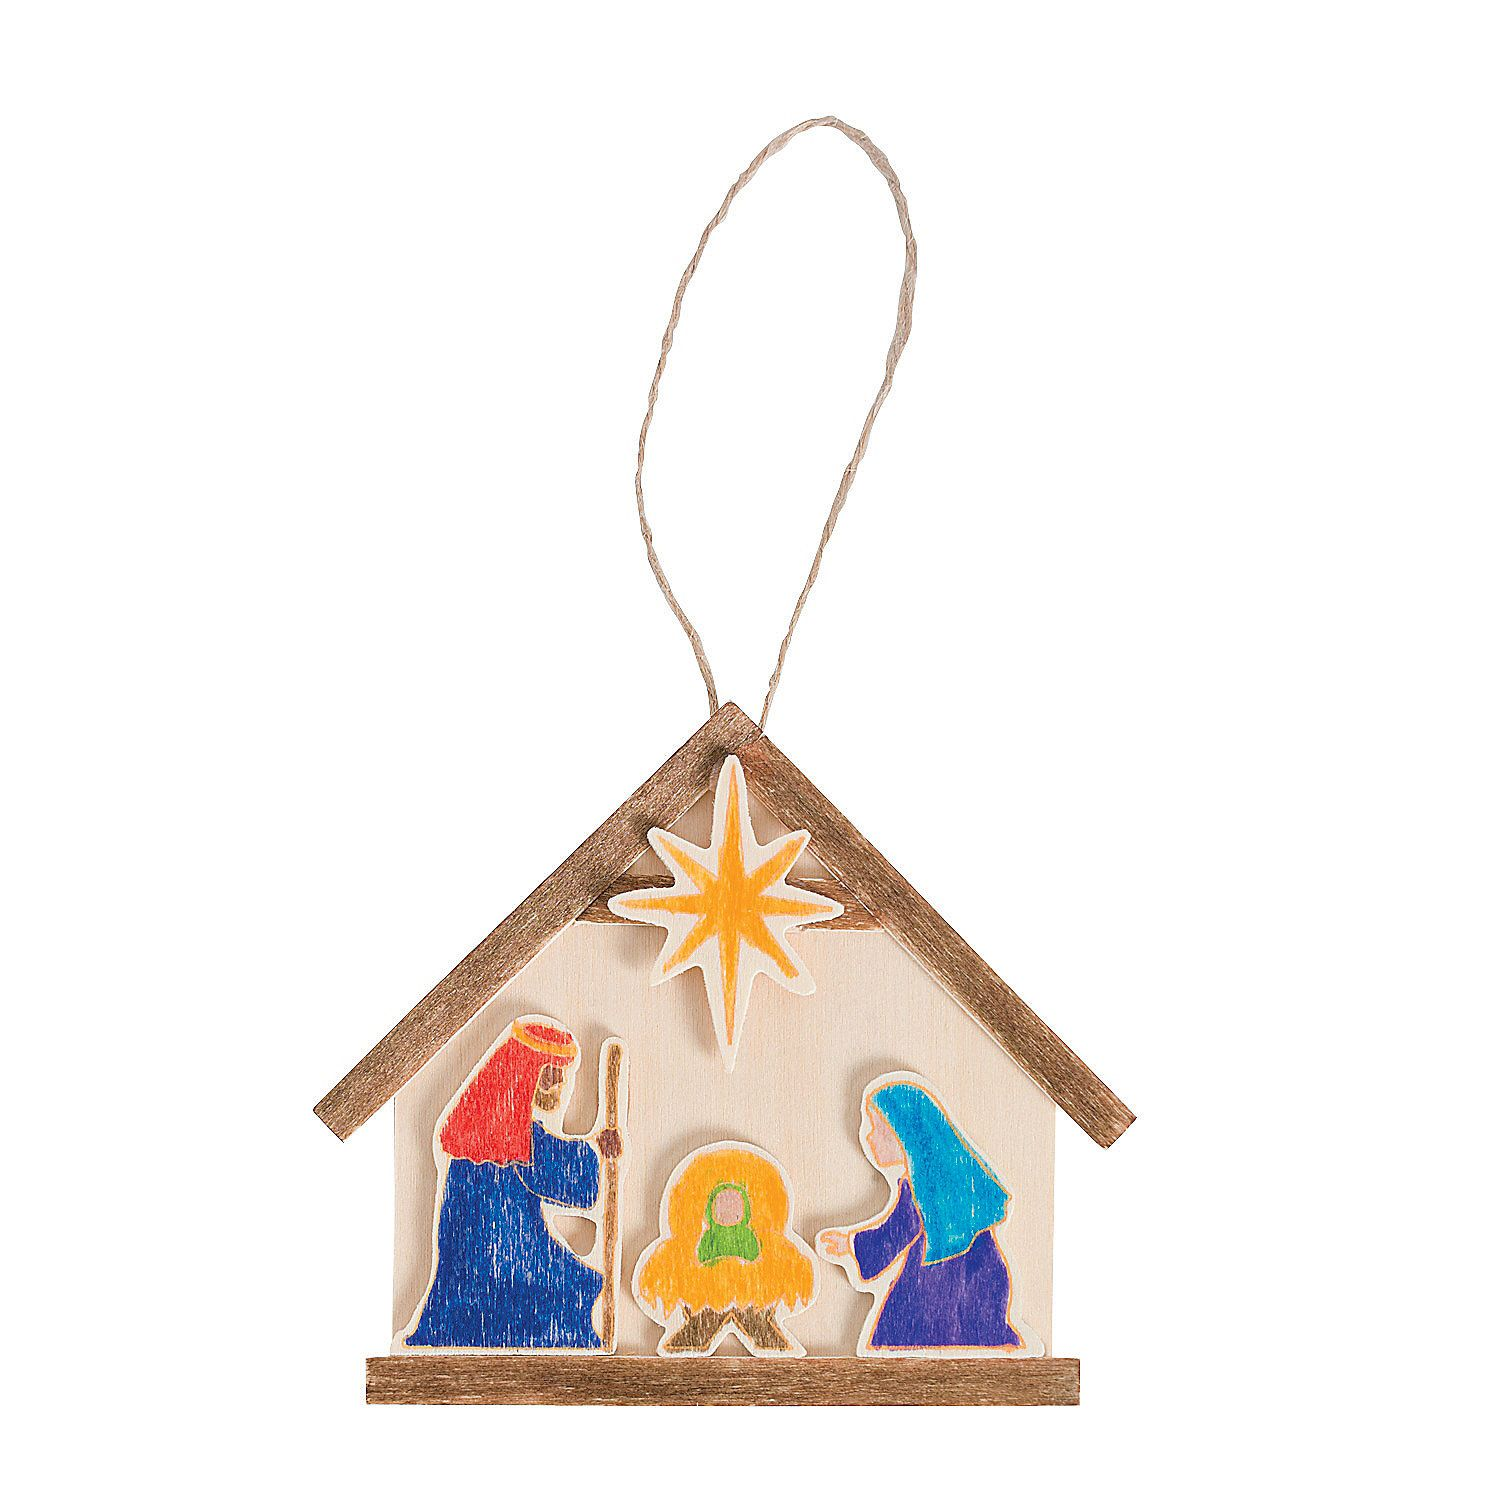 Diy nativity christmas ornaments orientaltrading ornaments 9348b8d951be4308177042dd98c6aff0g solutioingenieria